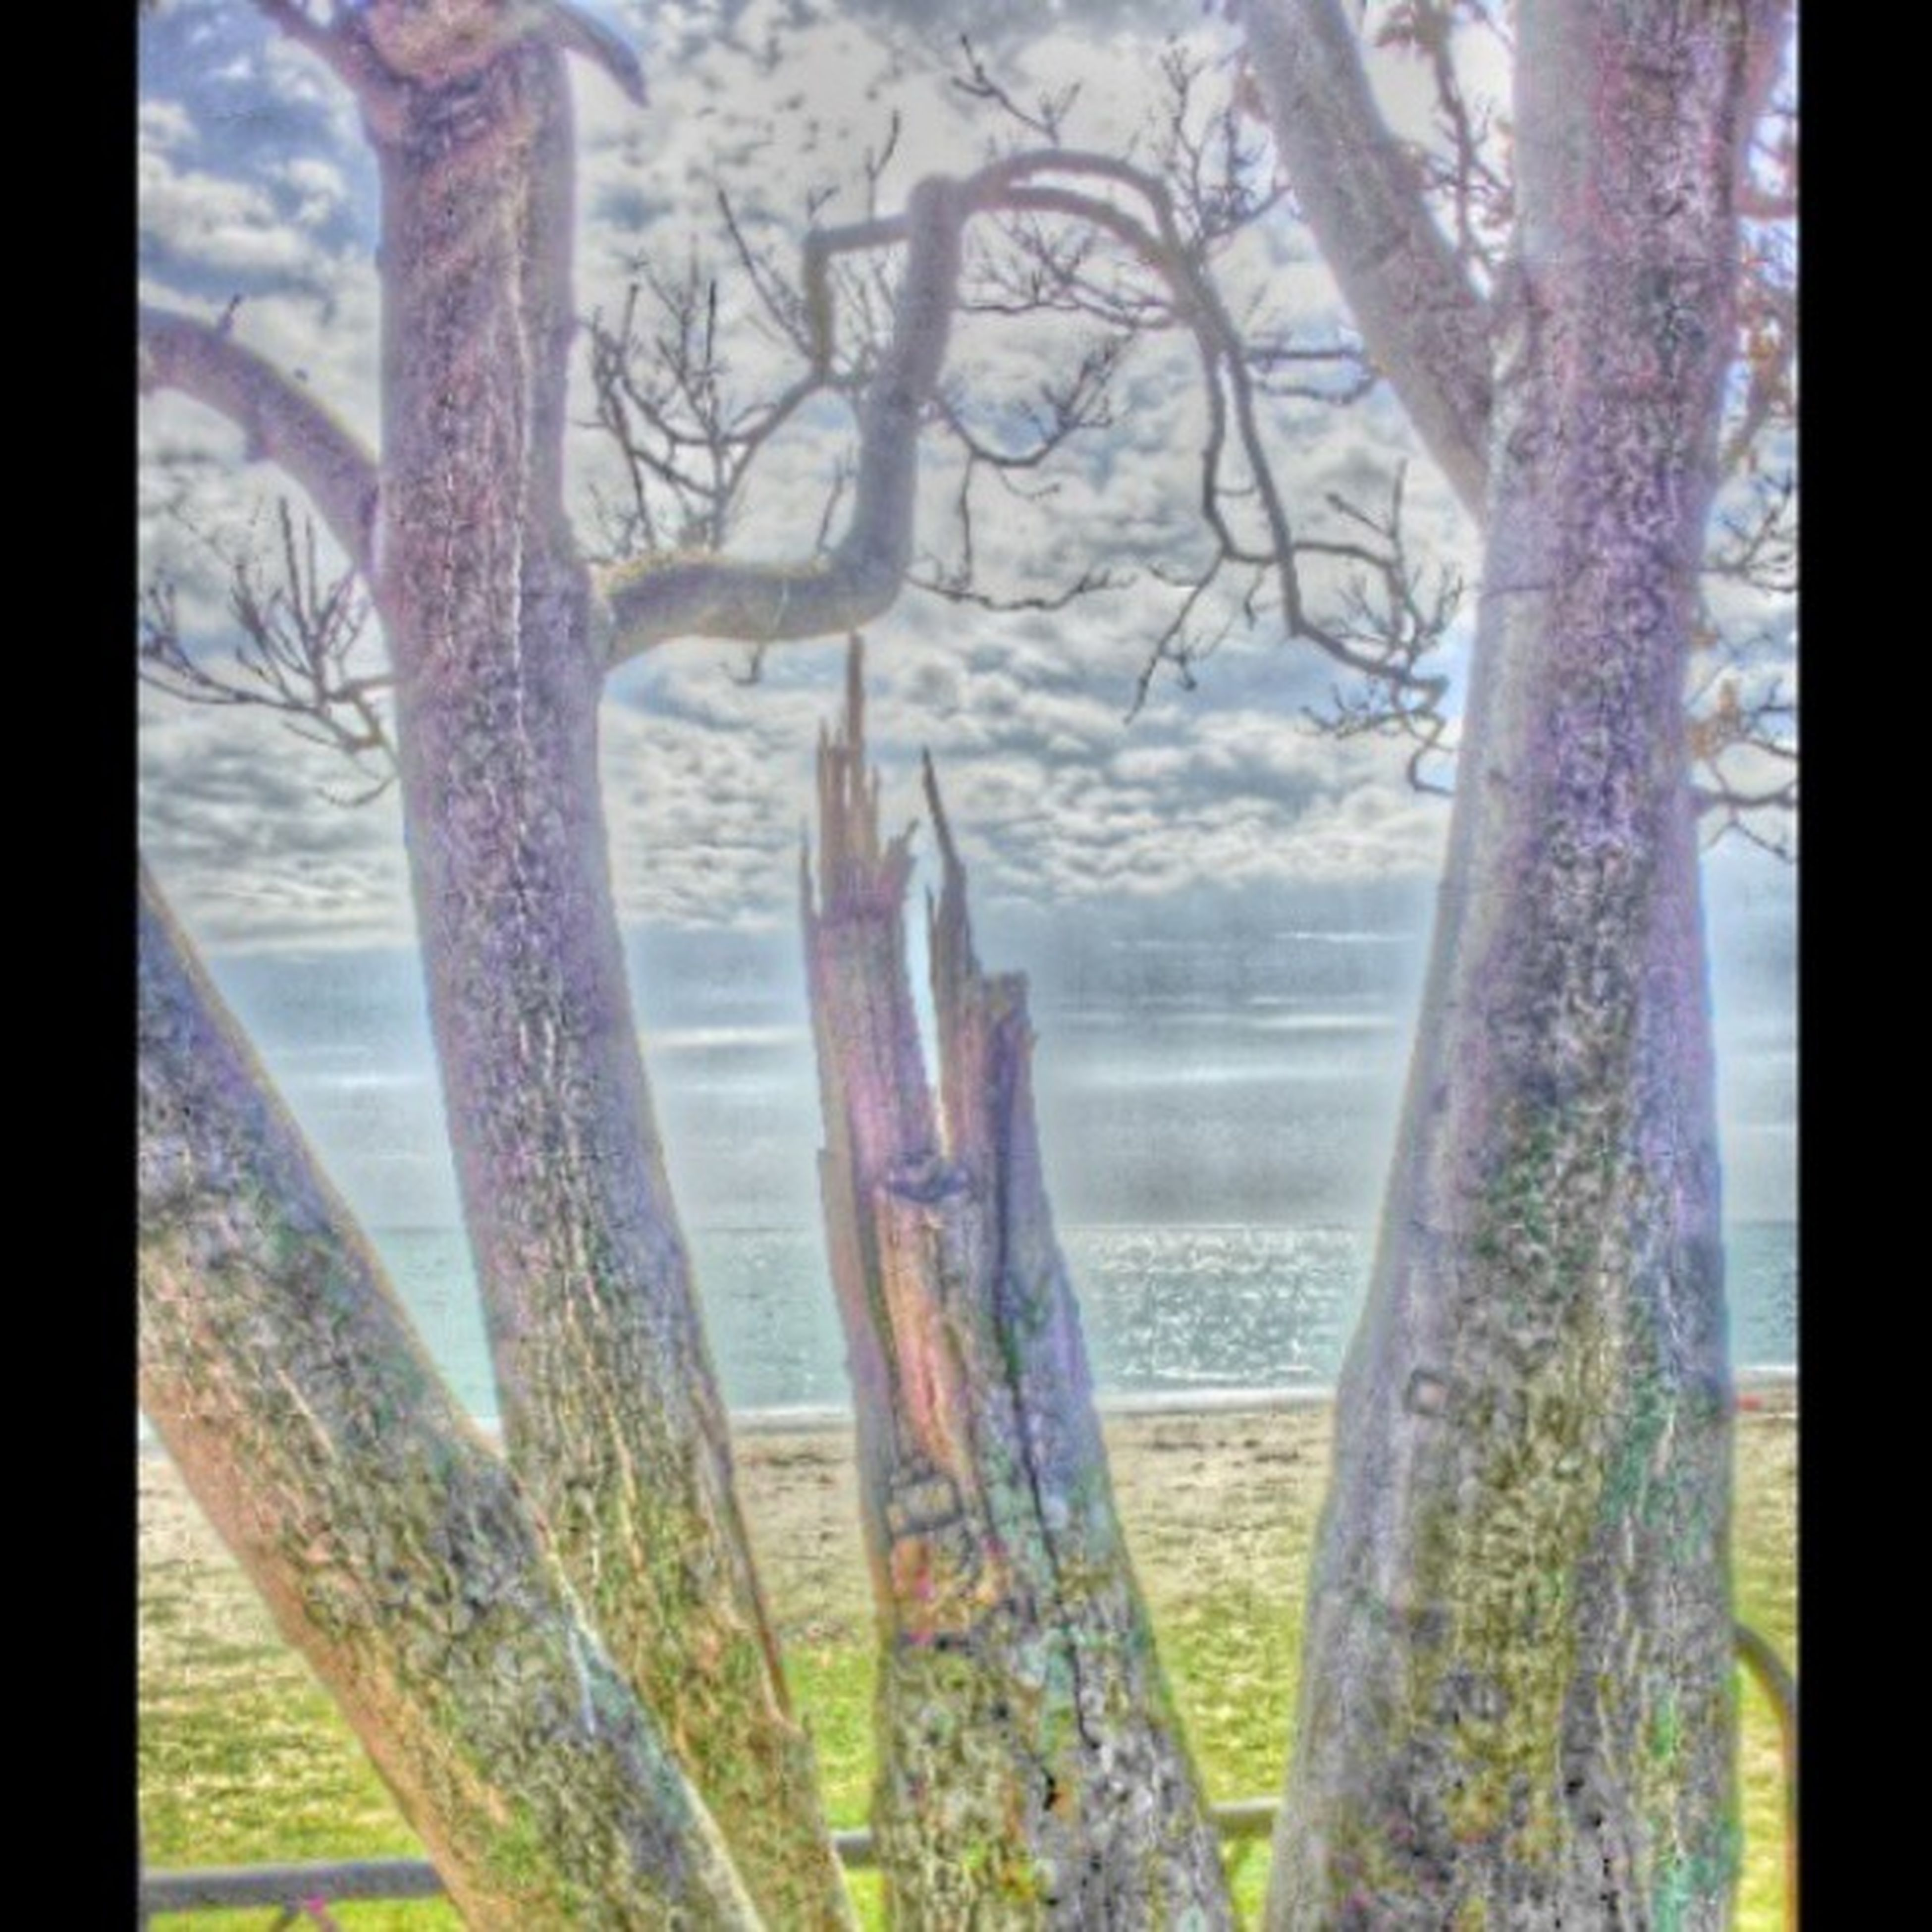 tree trunk, wood - material, tree, tranquility, tranquil scene, nature, water, scenics, grass, beauty in nature, branch, growth, wooden, day, fence, landscape, no people, field, outdoors, non-urban scene